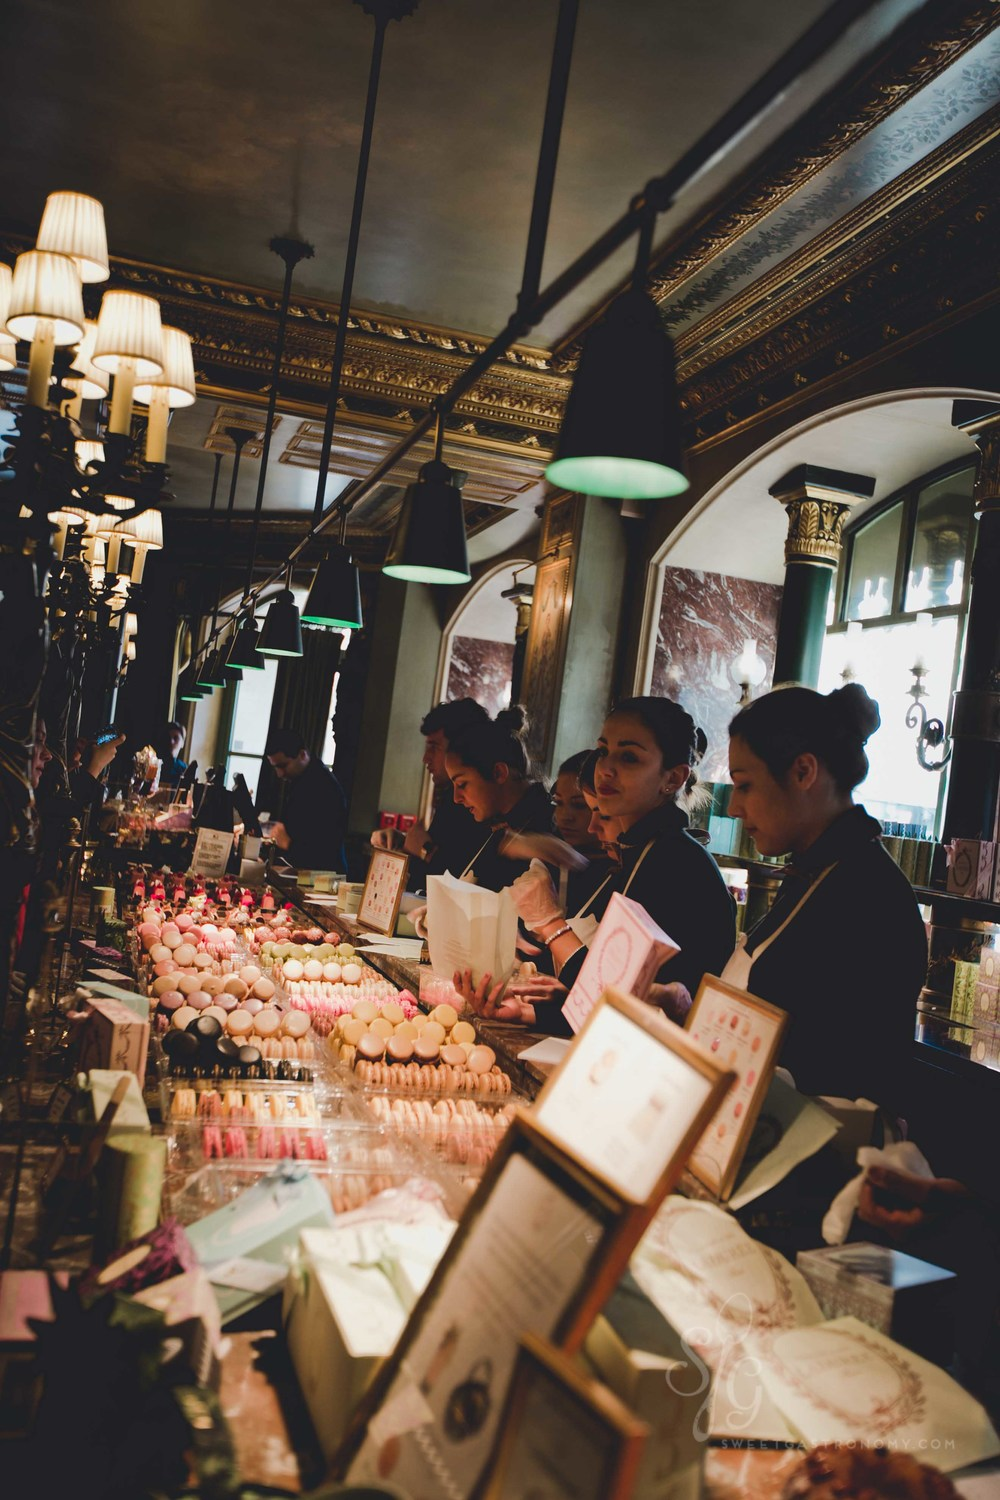 Hustling in the very busy Ladurée on Champs-Élysées to get our sweet treats.